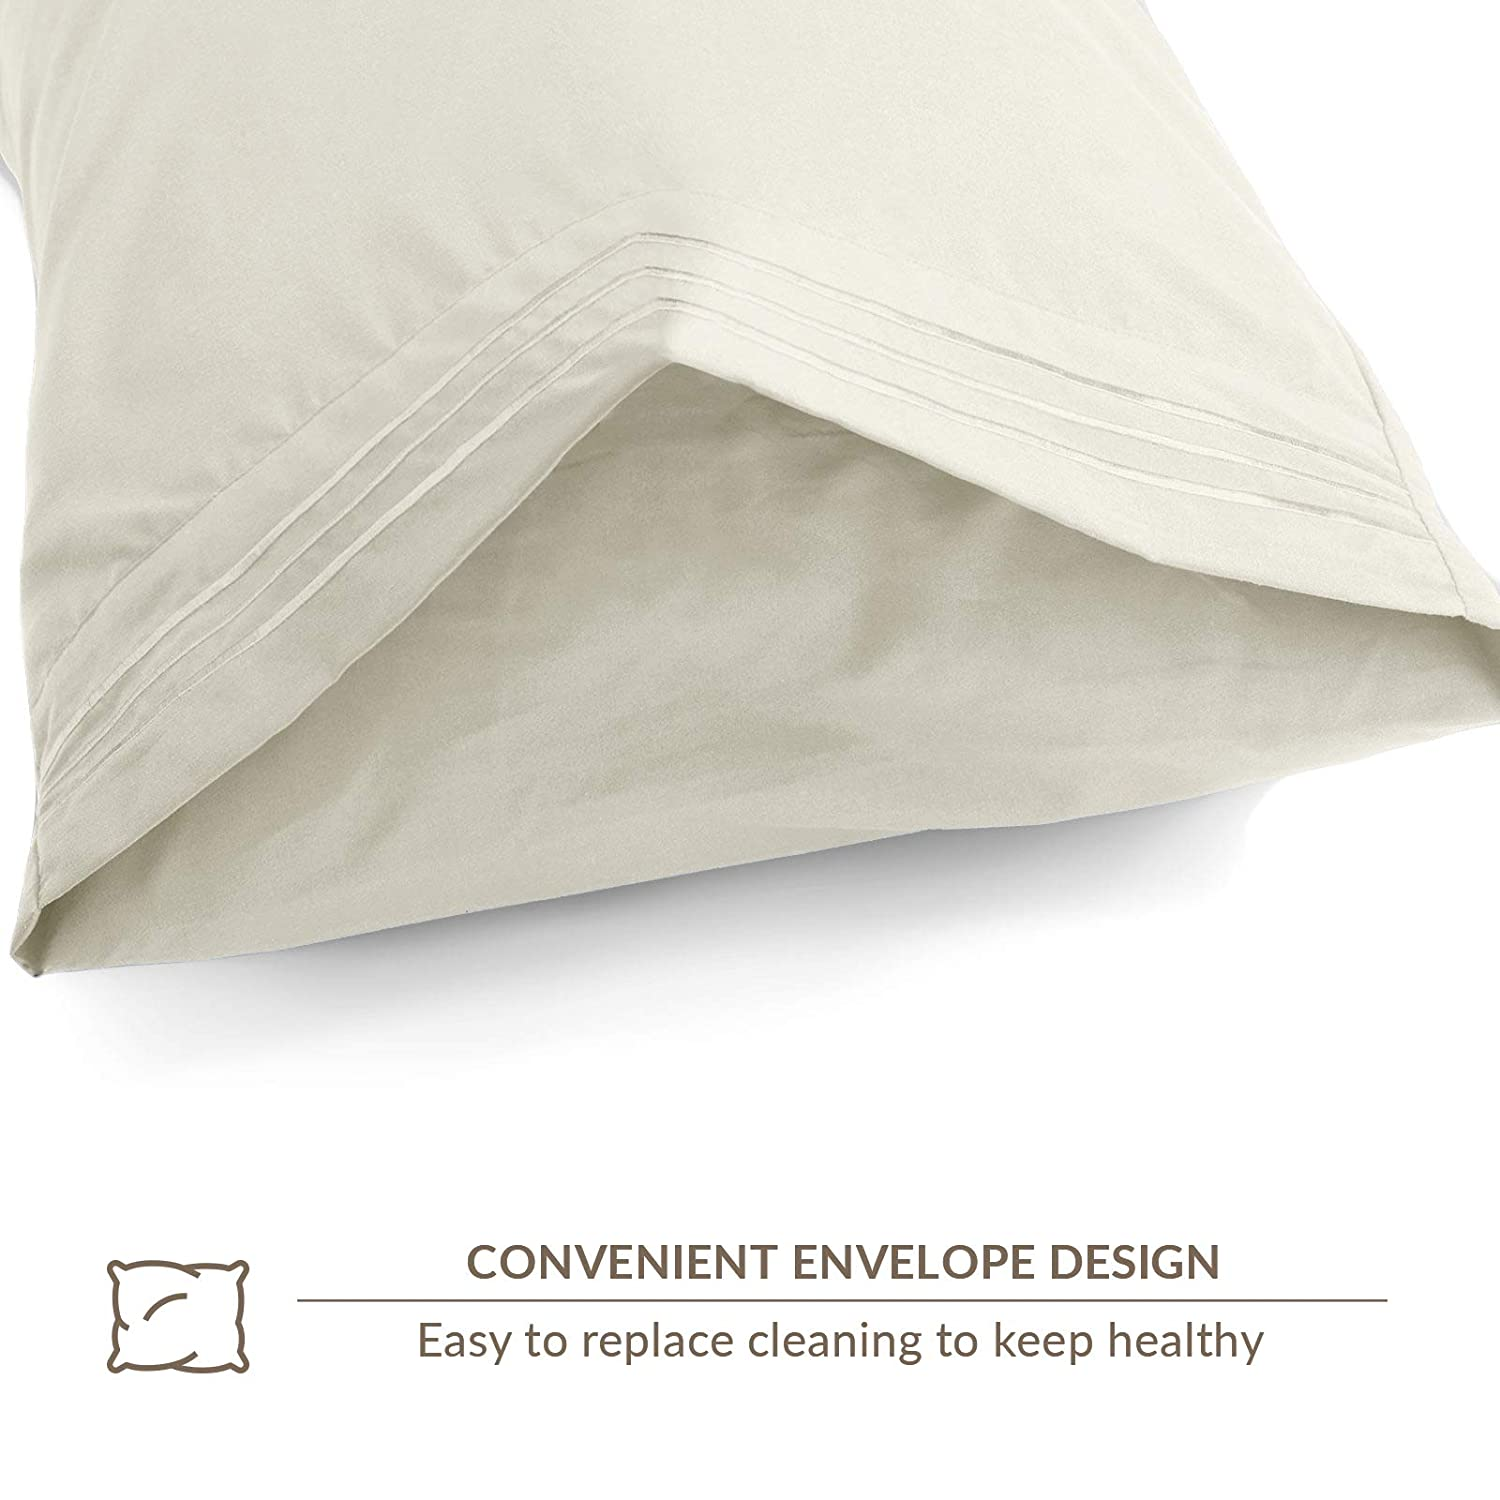 Fade VEEYOO Pillowcase Standard//Queen Size 2 Pack Hotel Luxury Pillow Case Extra Soft 1800 Double Brushed Microfiber Pillowcase Wrinkle Moss Green Stain Resistant 20x 30